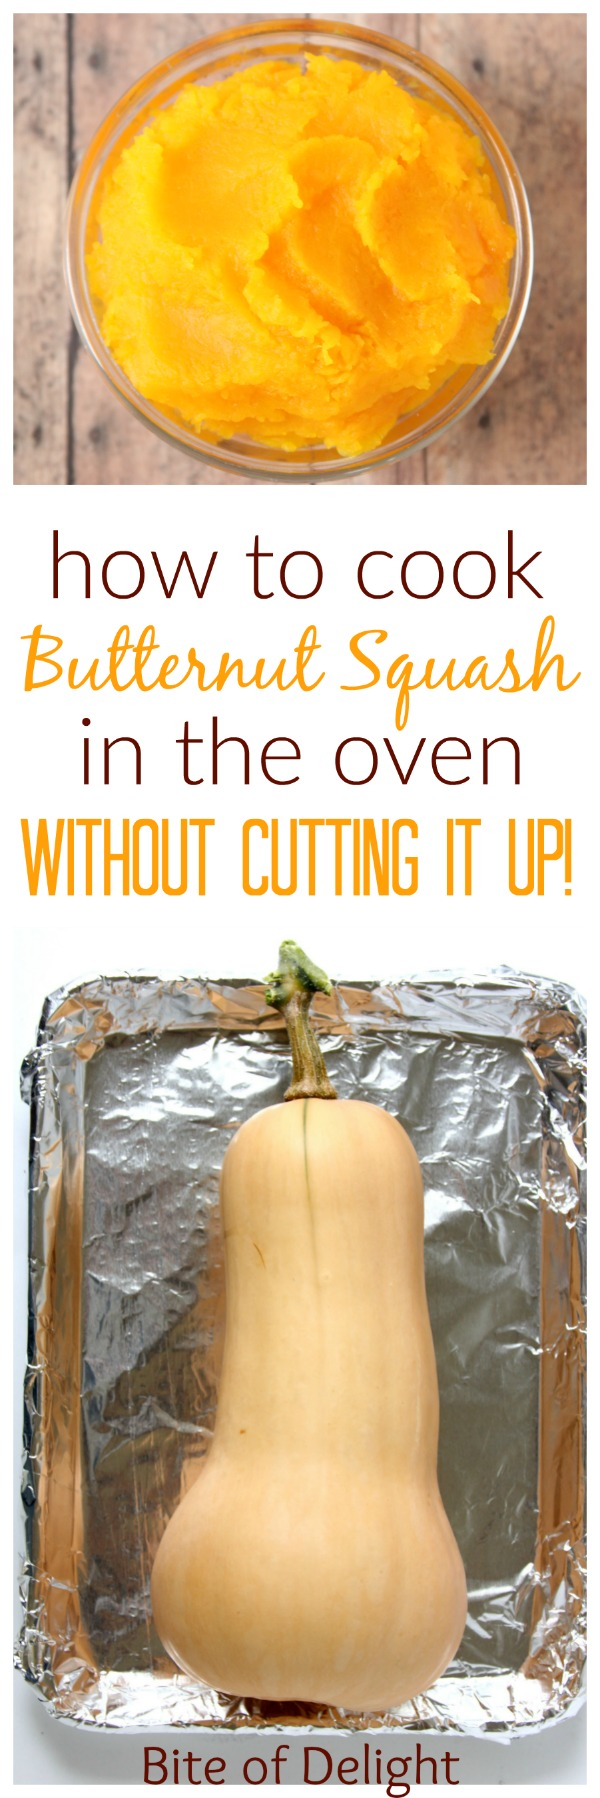 How to roast a whole butternut squash in the oven | Easy Recipe | Tutorial